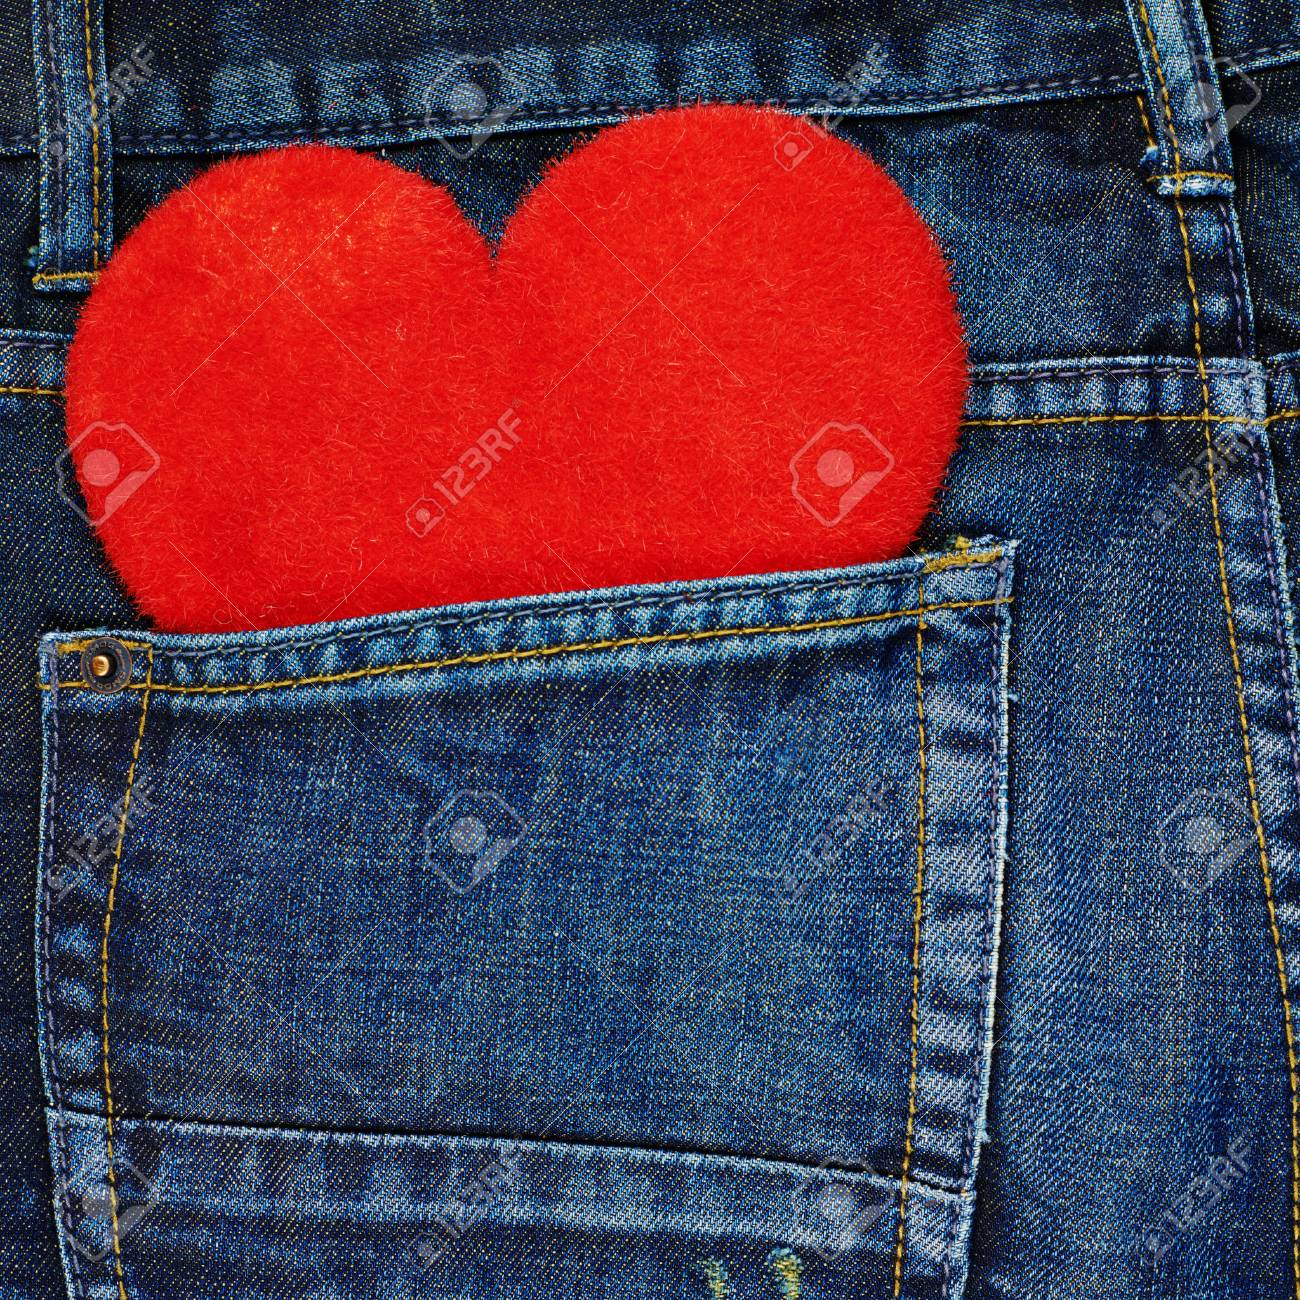 51a57d870c Red plush toy heart in a back pocket of a navy blue denim jeans..